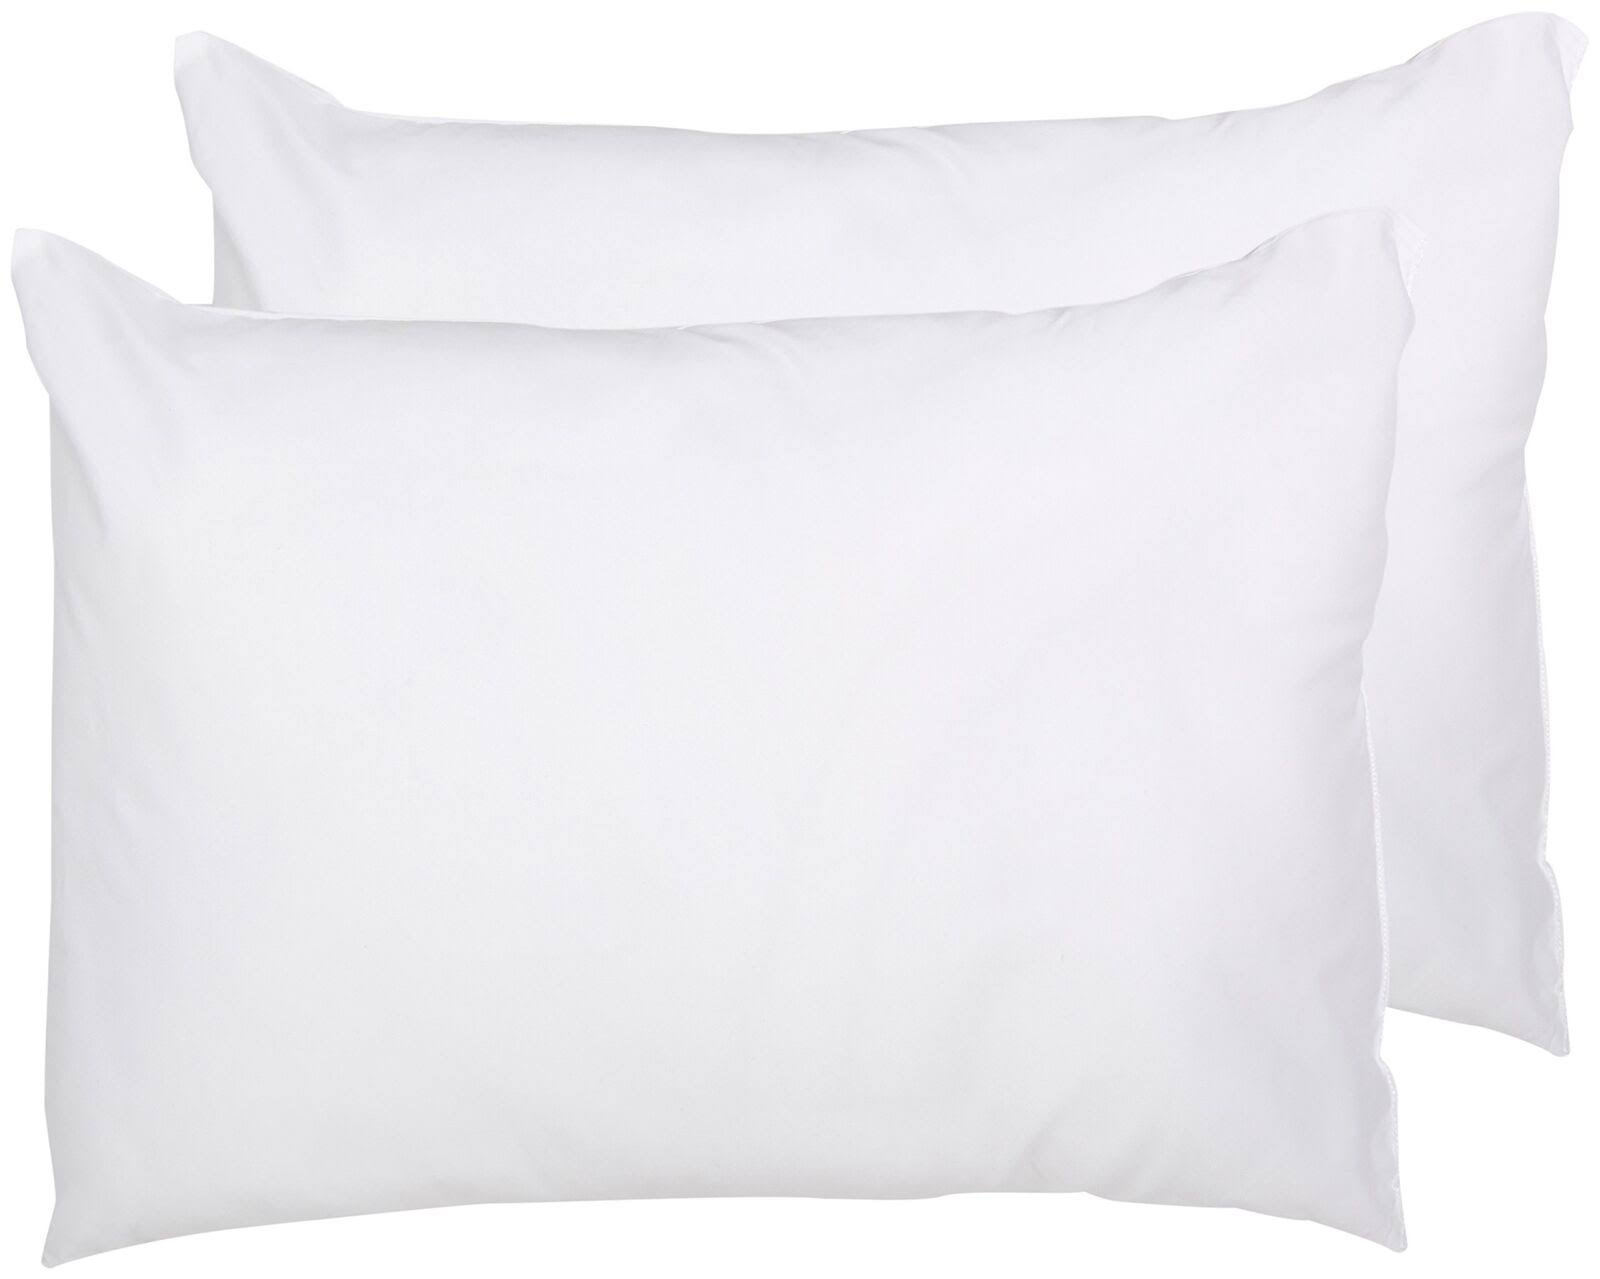 Snuggle Twin Pack Bed Pillows White